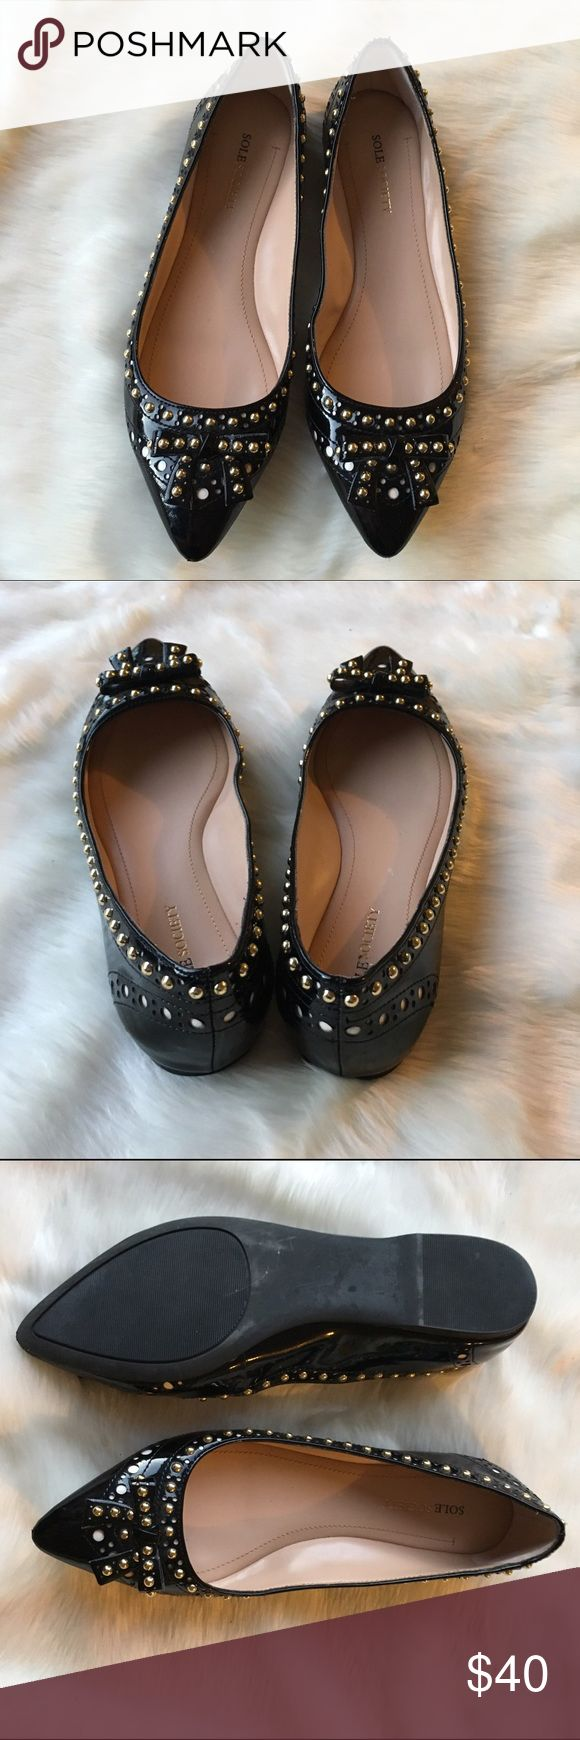 ✂️firm price✂️sole society studded flats Excellent like new pointed patent studded flats. Sz 8 Sole Society Shoes Flats & Loafers